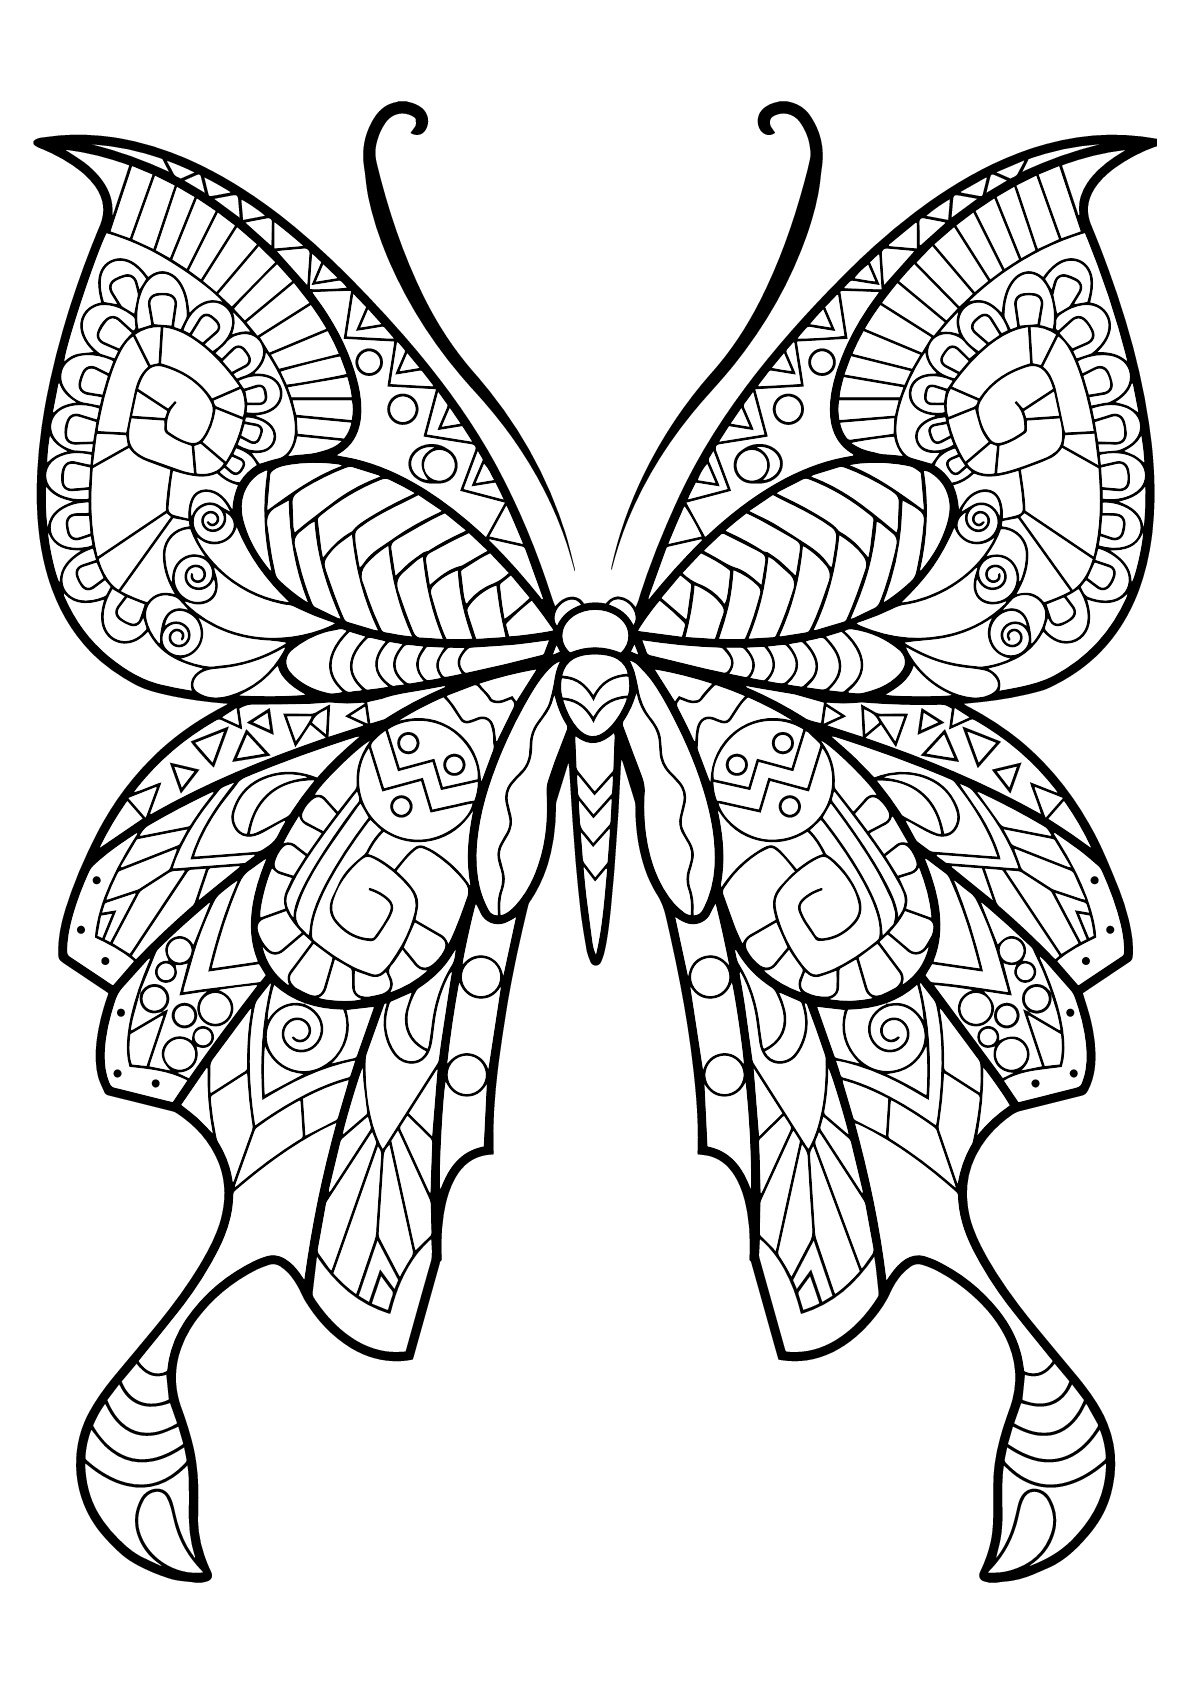 butterfly printable printable fun butterfly coloring pages for kids art hearty butterfly printable 1 1